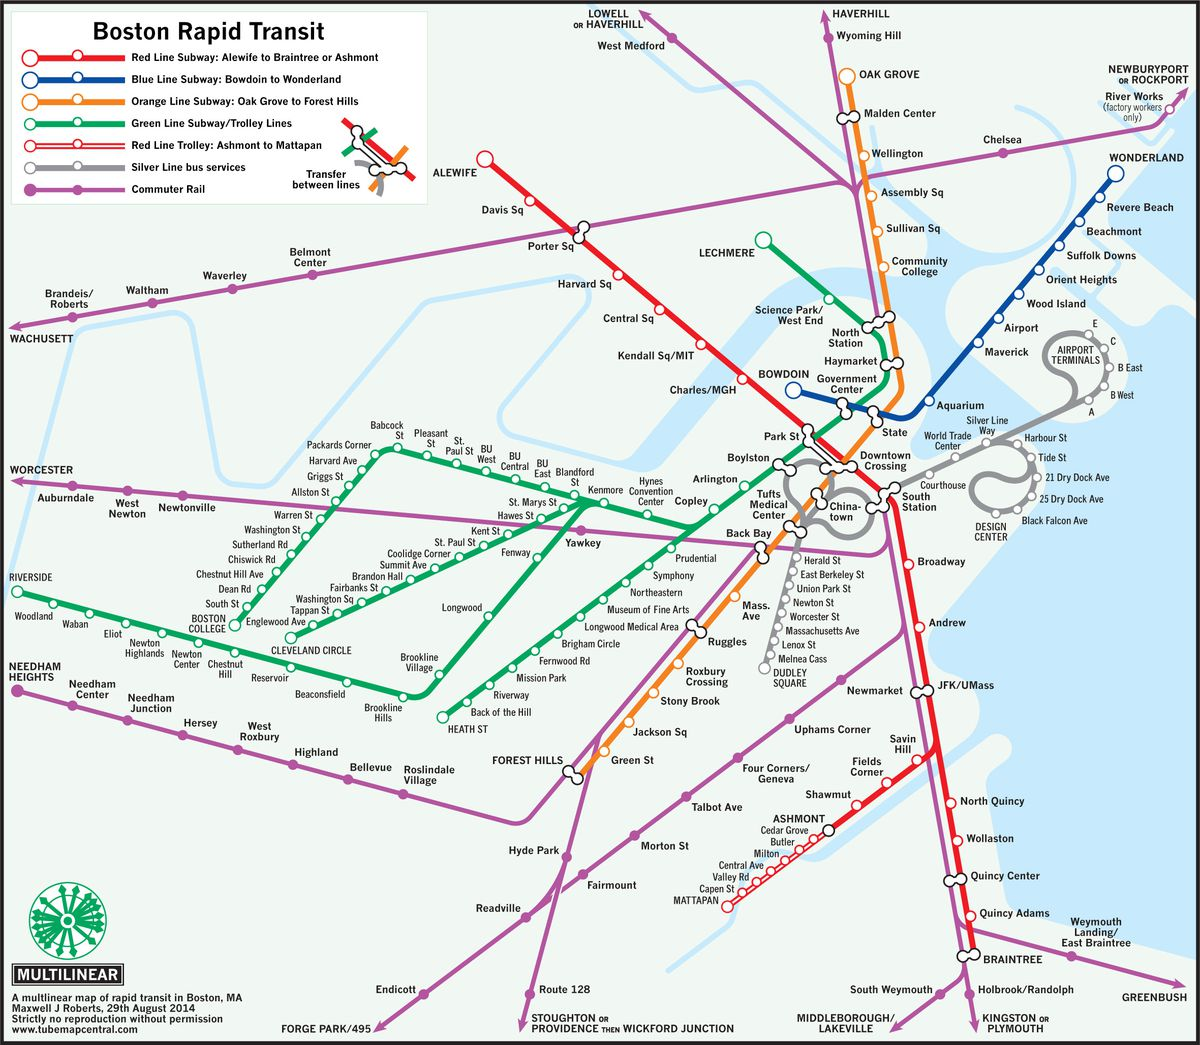 Alewife Subway Map.Outside The Lines 6 Maps That Re Imagine Boston S T Curbed Boston